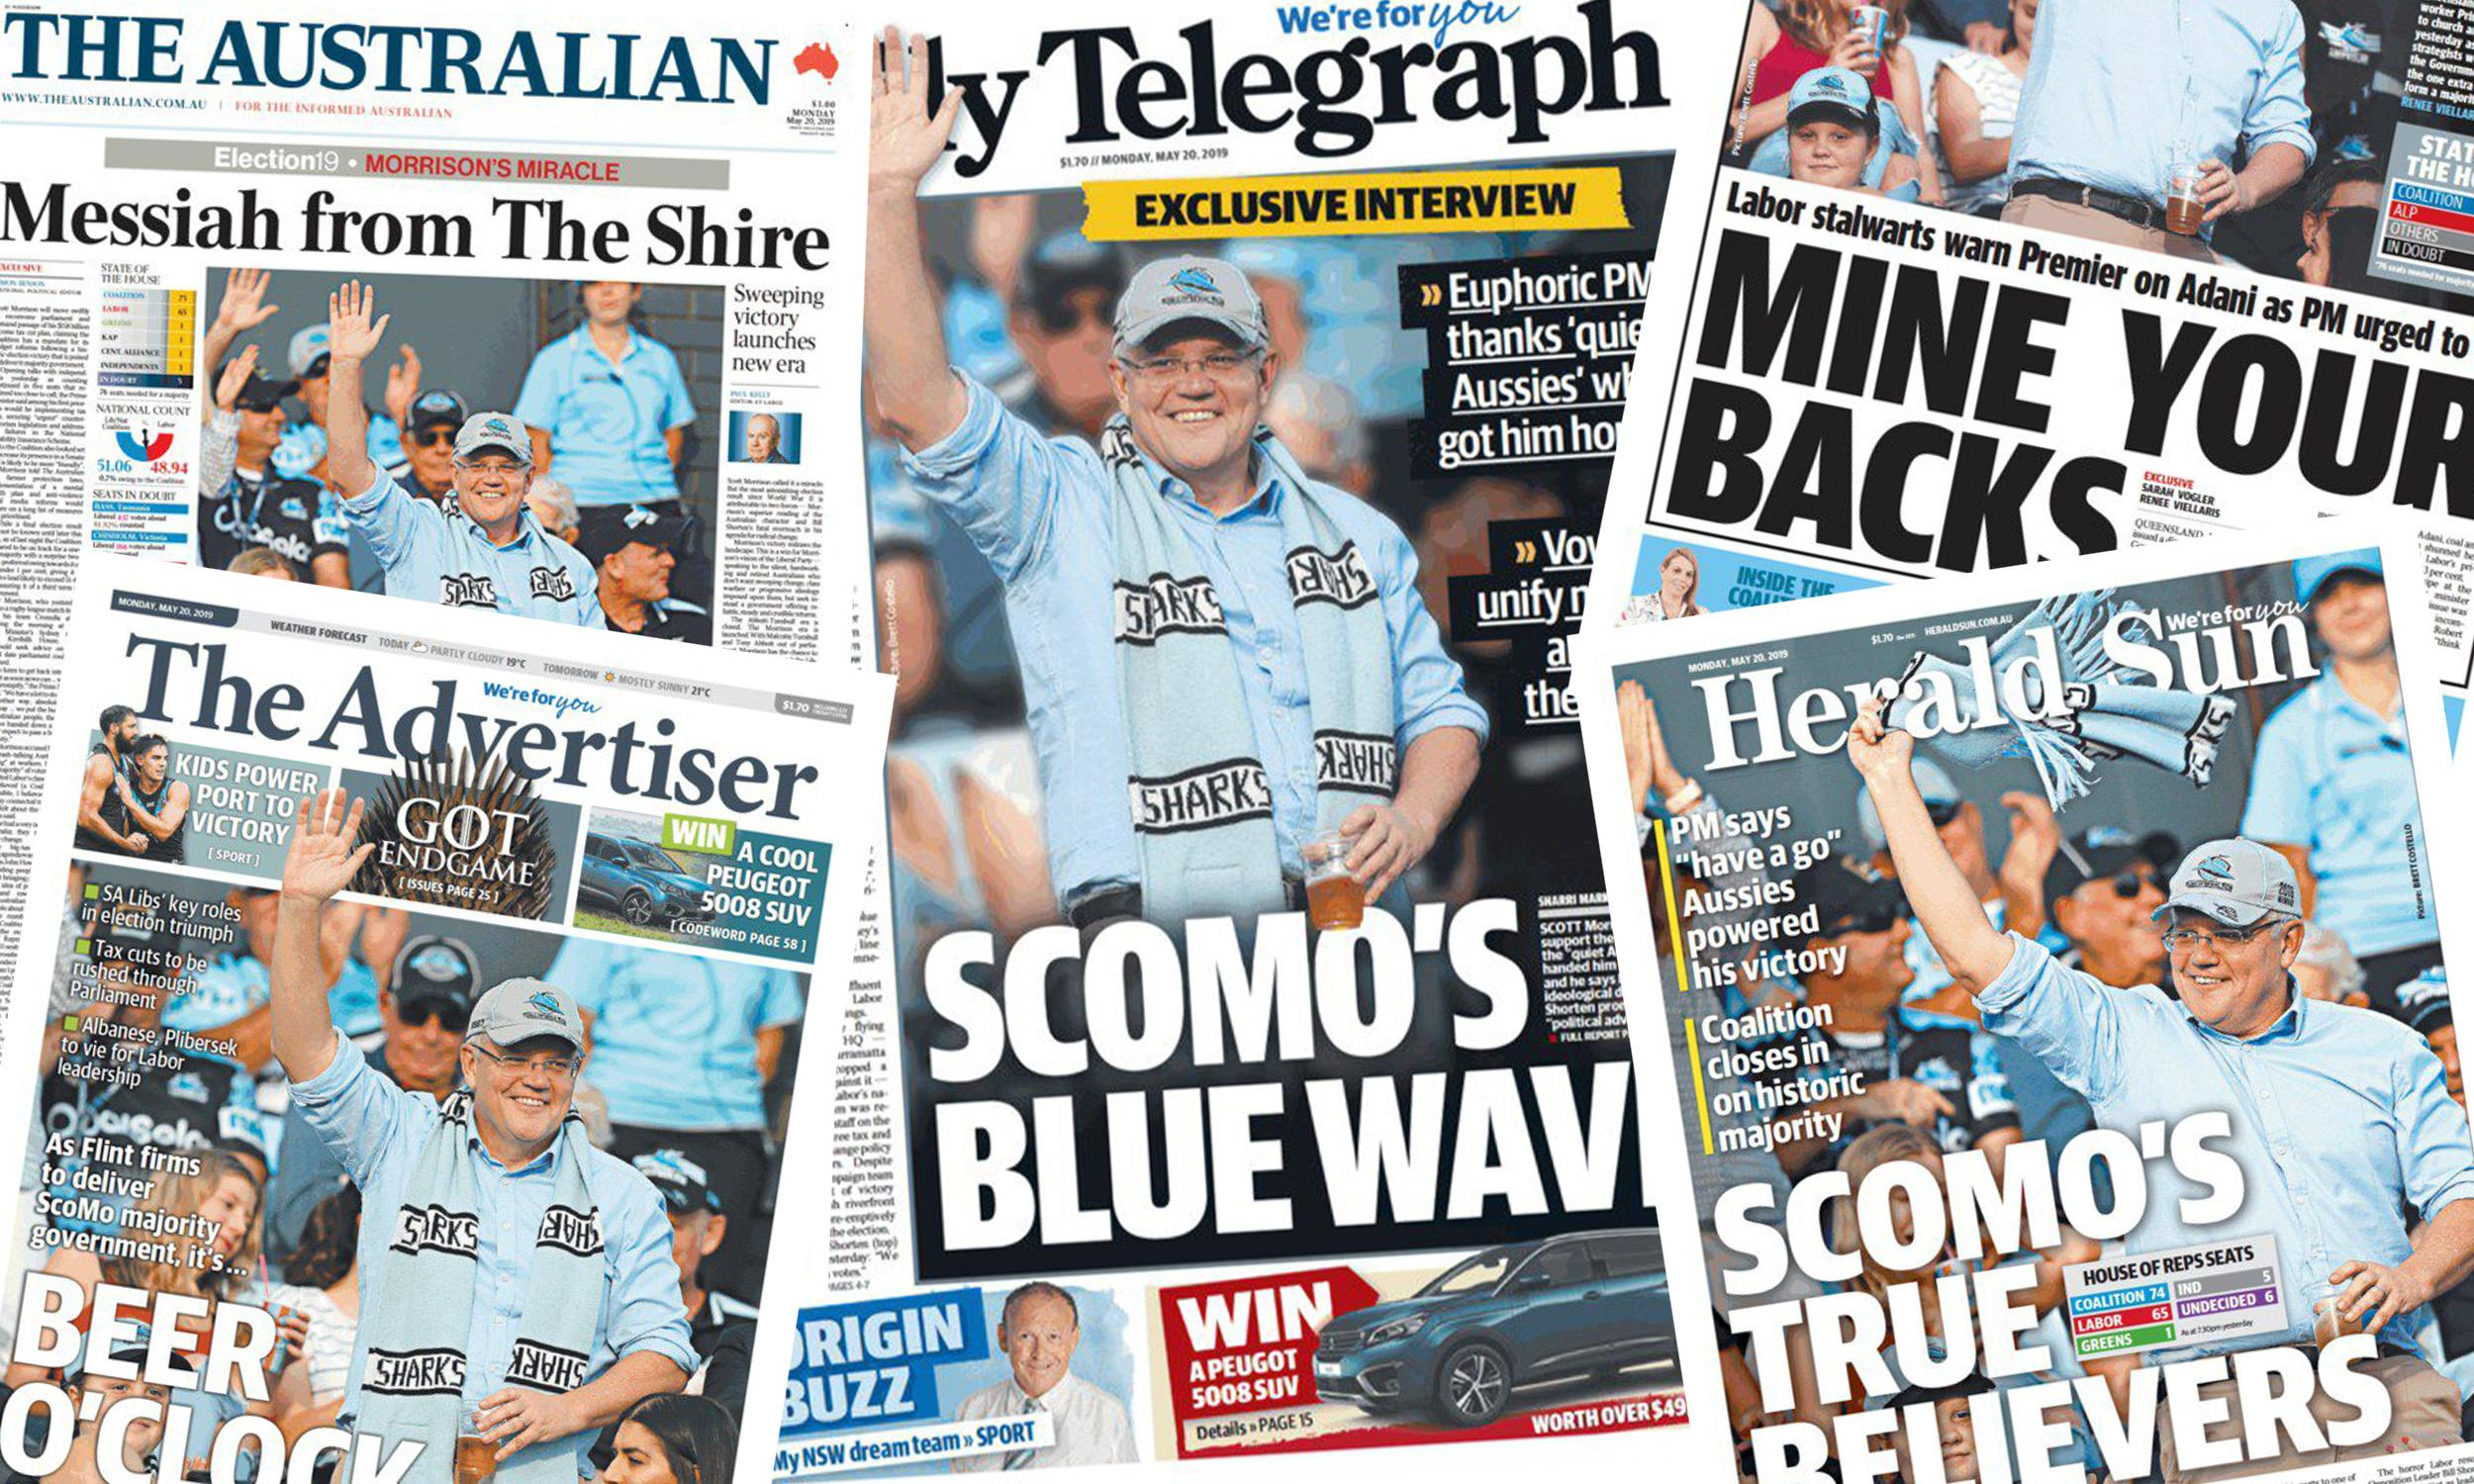 Murdoch's 'messiah': News Corp gets biblical with coverage of Morrison's resurrection